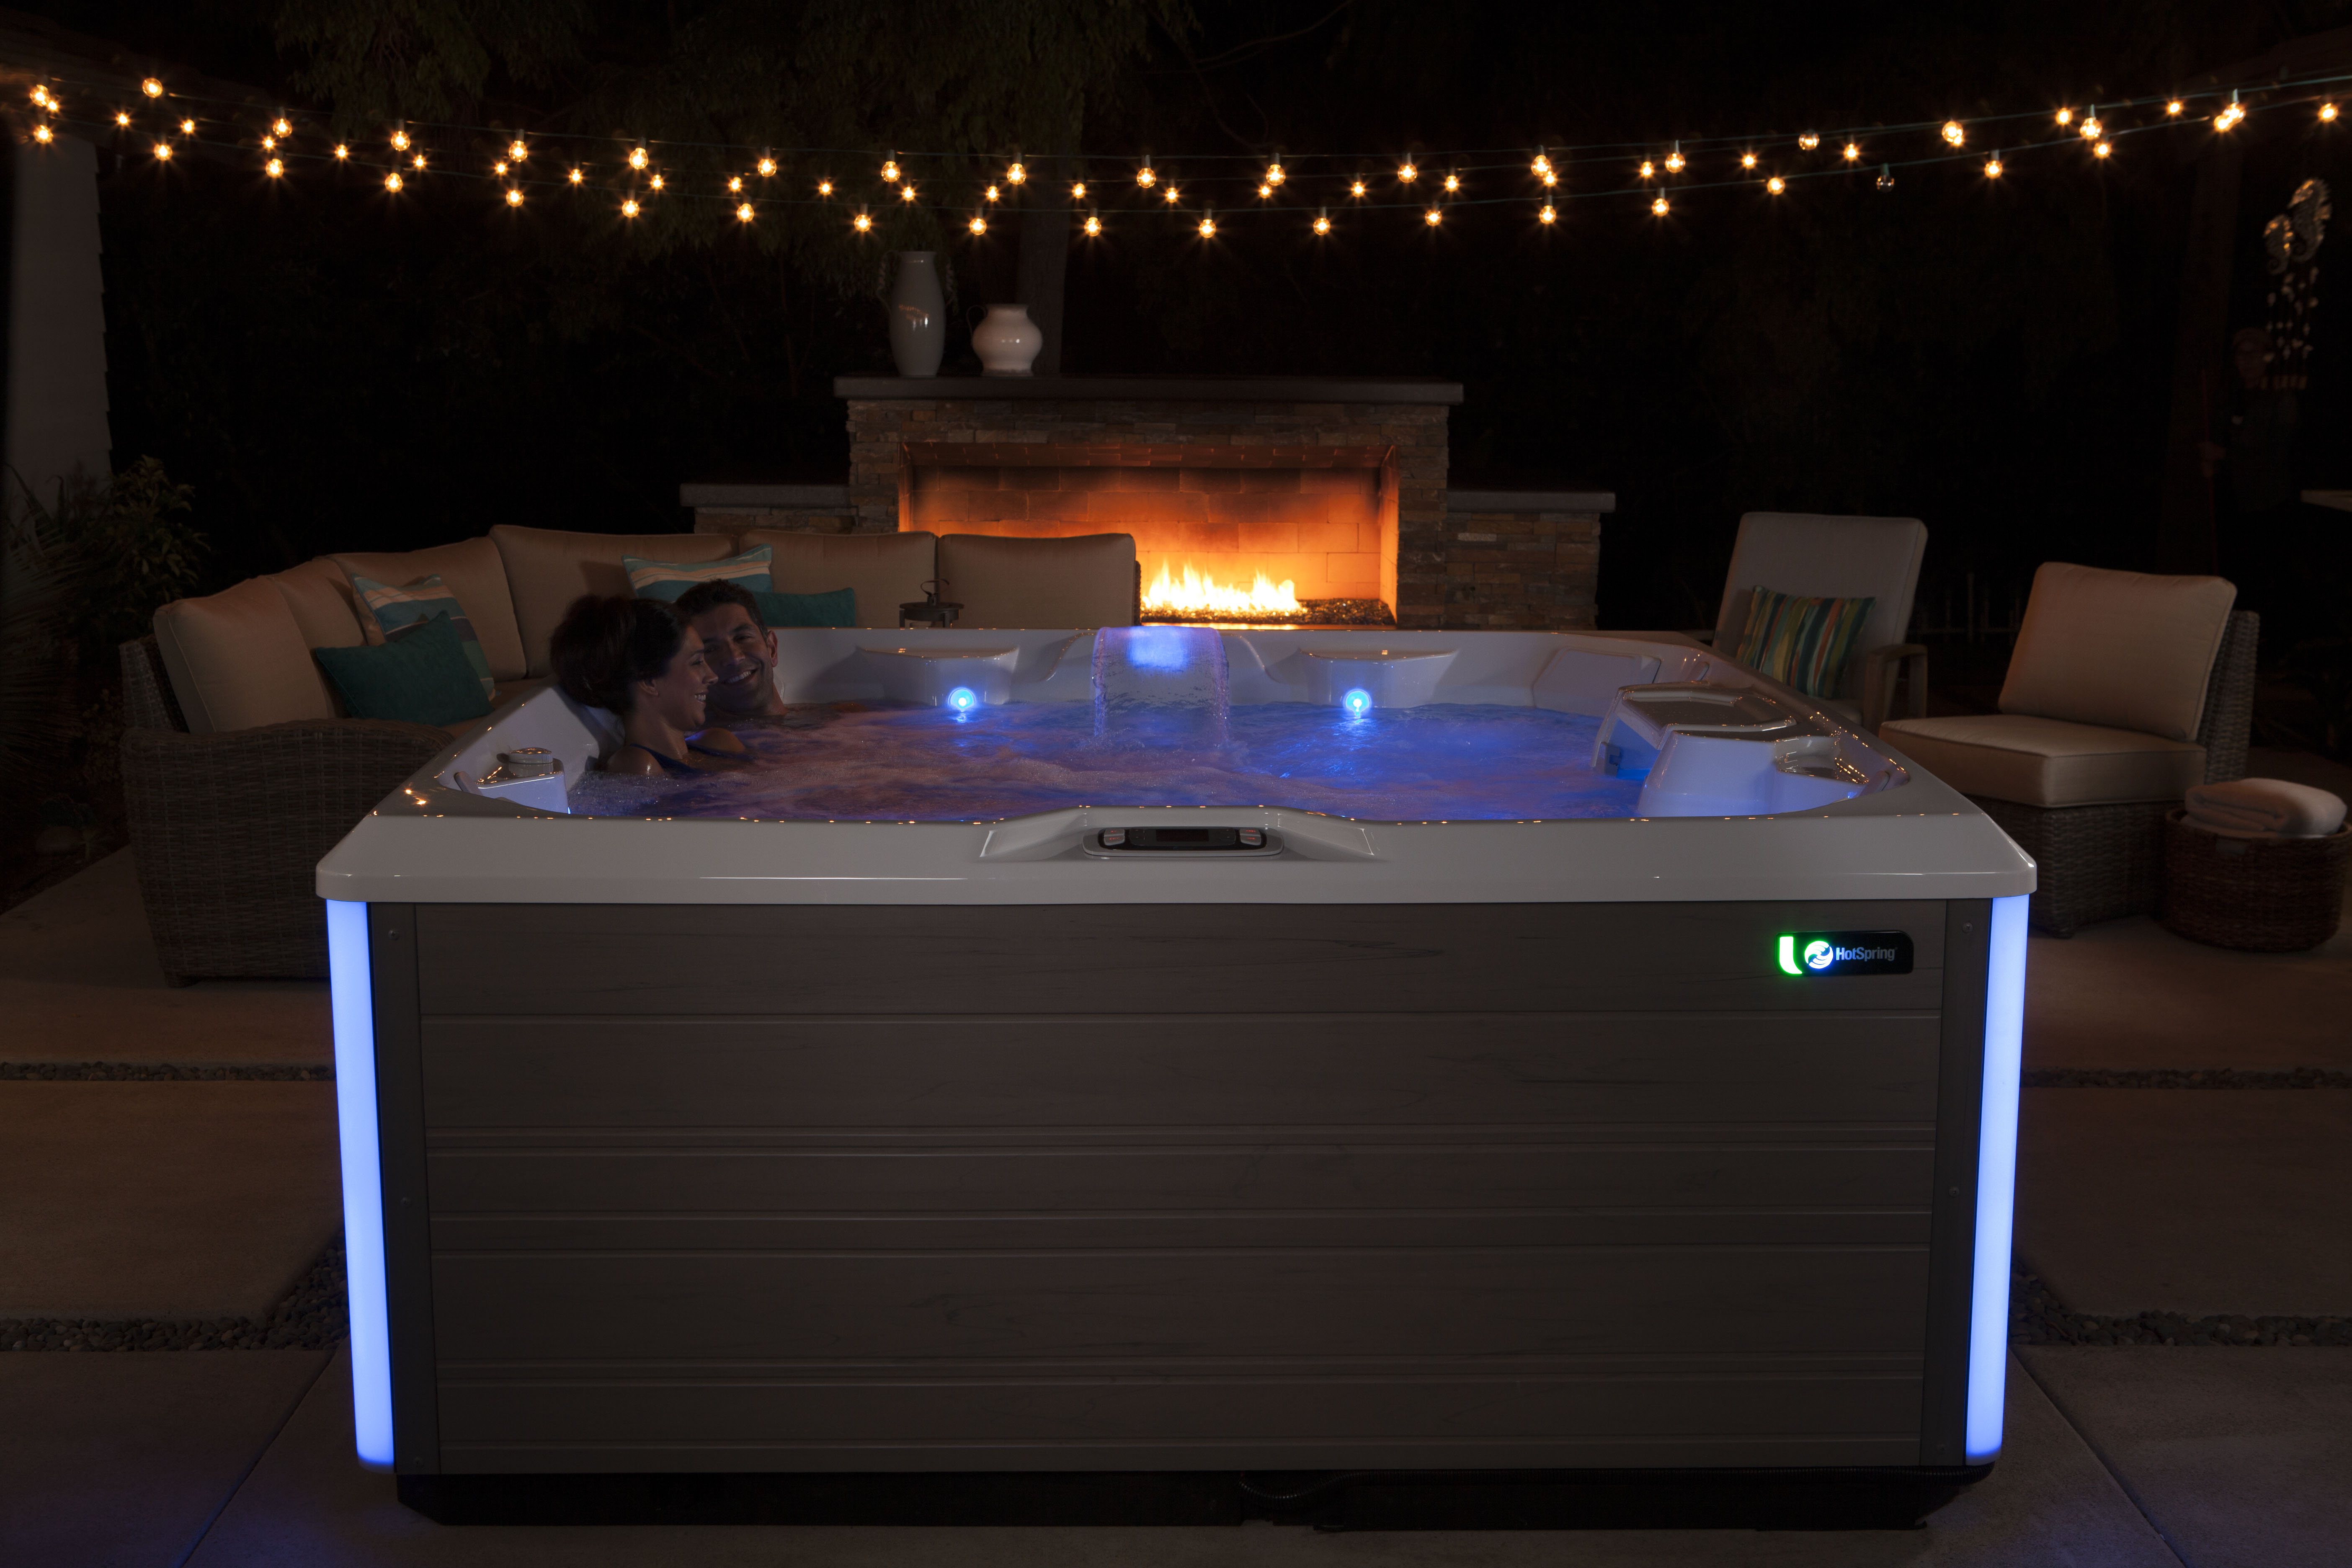 The best times to use your hot tub